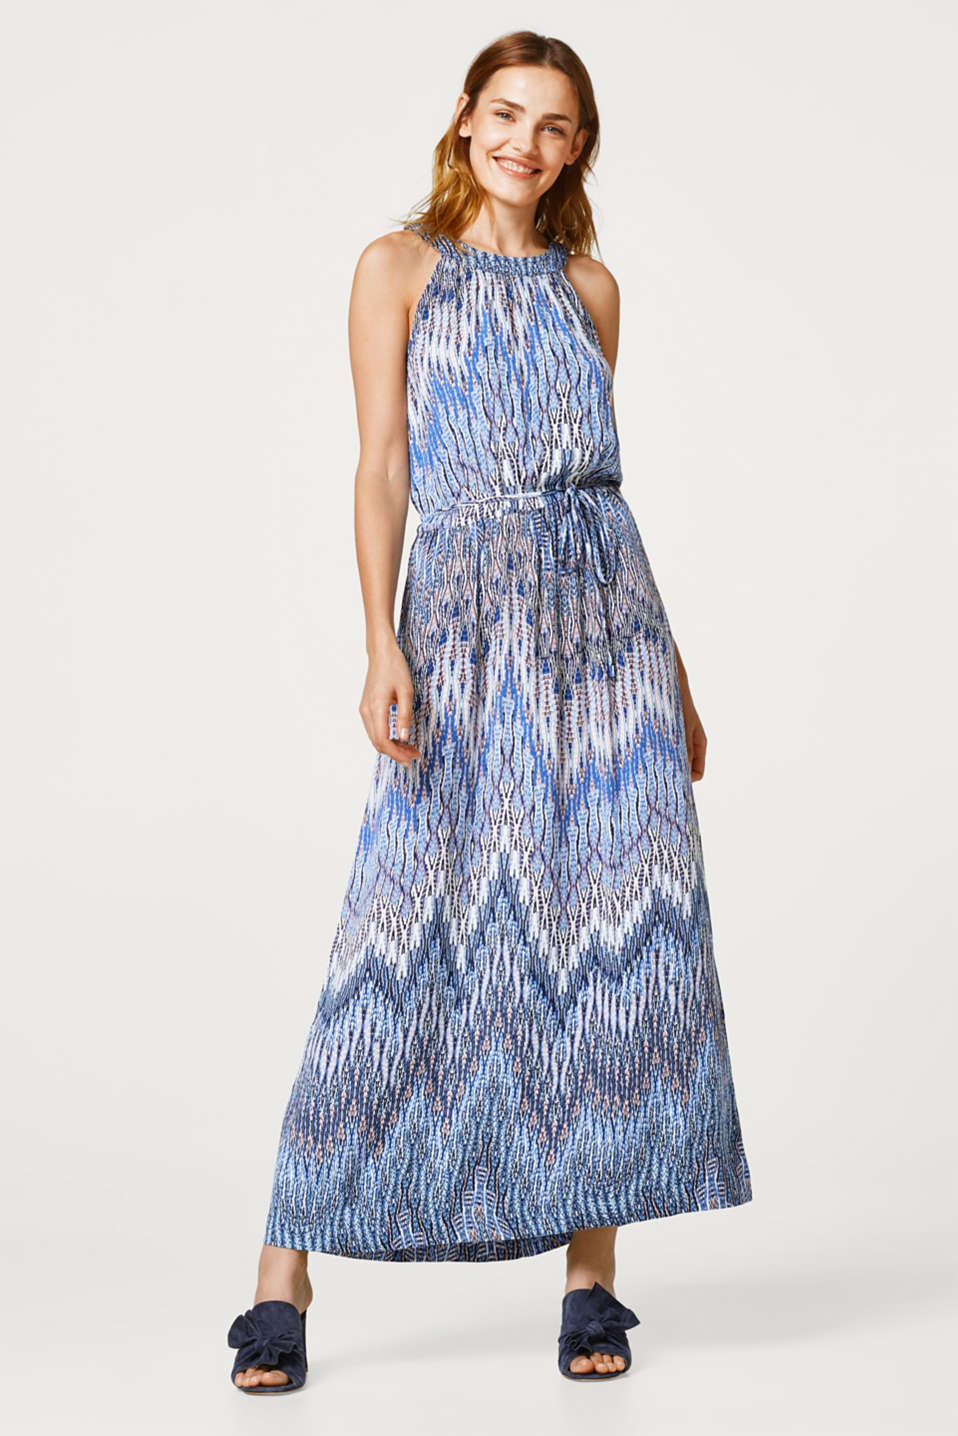 Flowing maxi dress with a beautiful tribal print